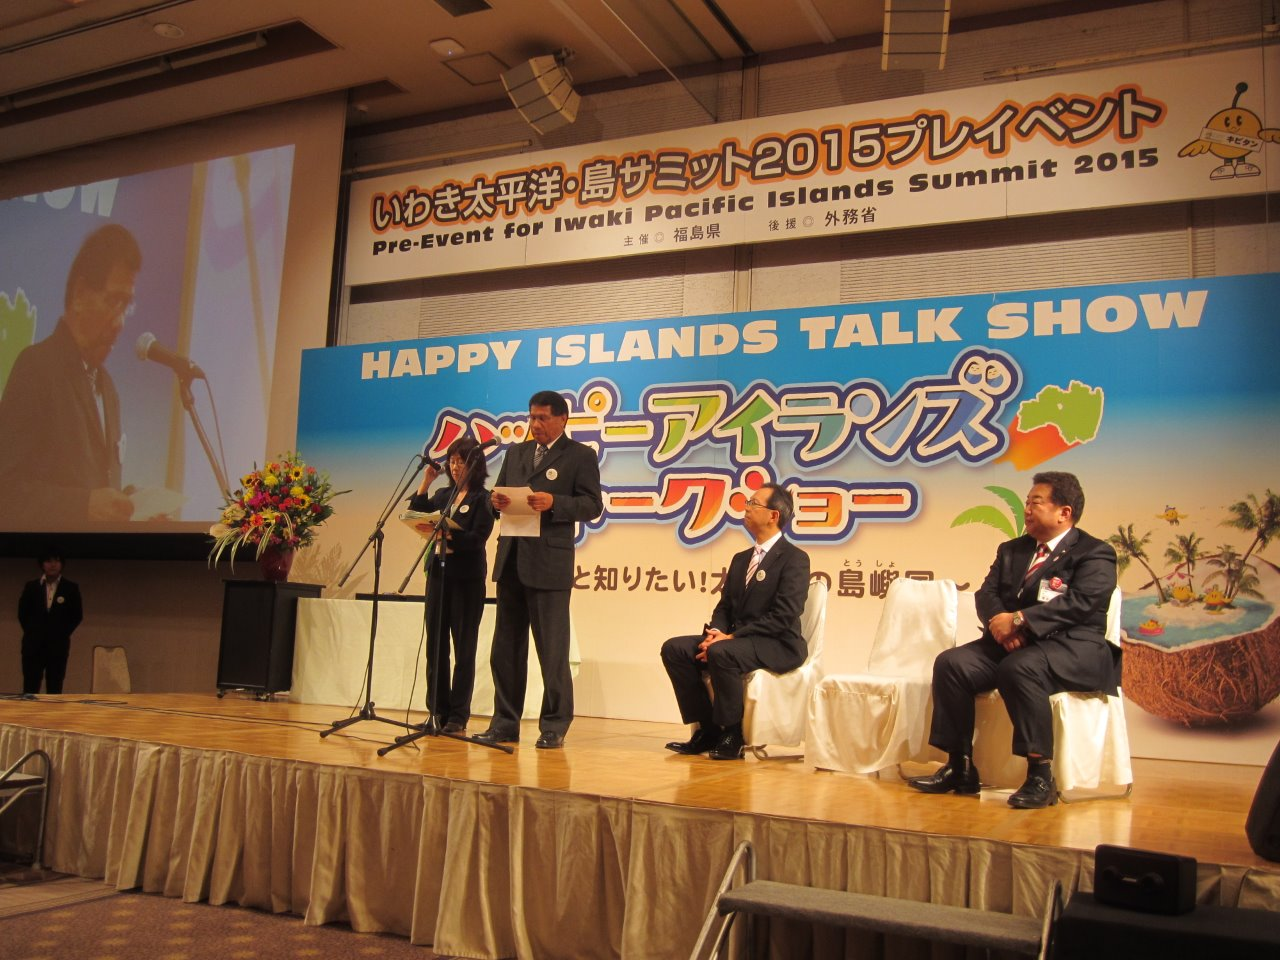 Happy Islands Talk Show